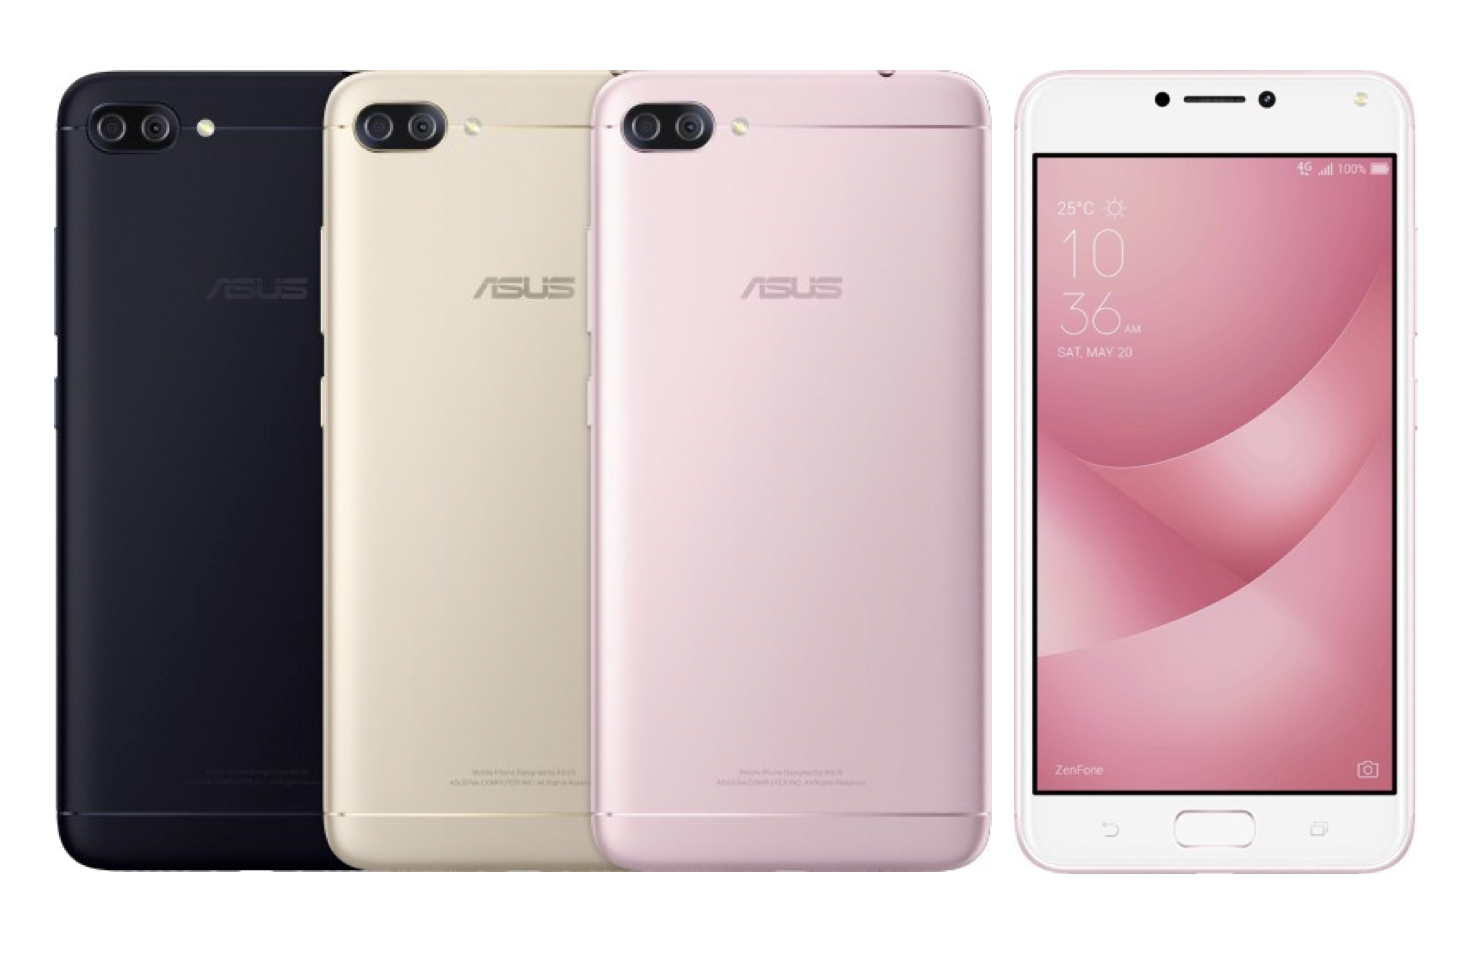 Asus ZenFone 4 Max: A flagship smartphone at an affordable price